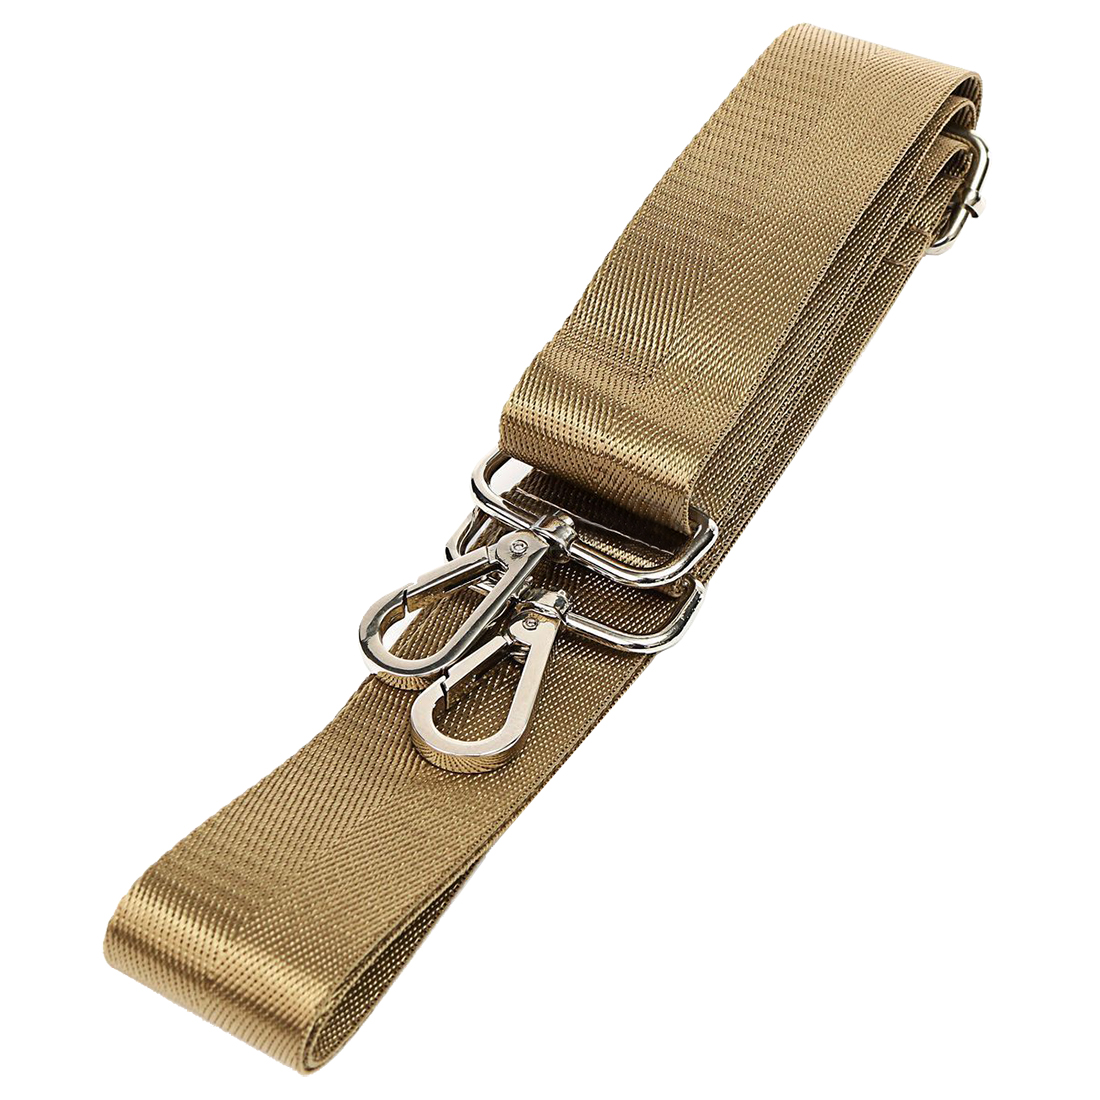 Replacement Shoulder Bag Straps Adjustable Strap Luggage Camera Bag, Khaki 1PCS